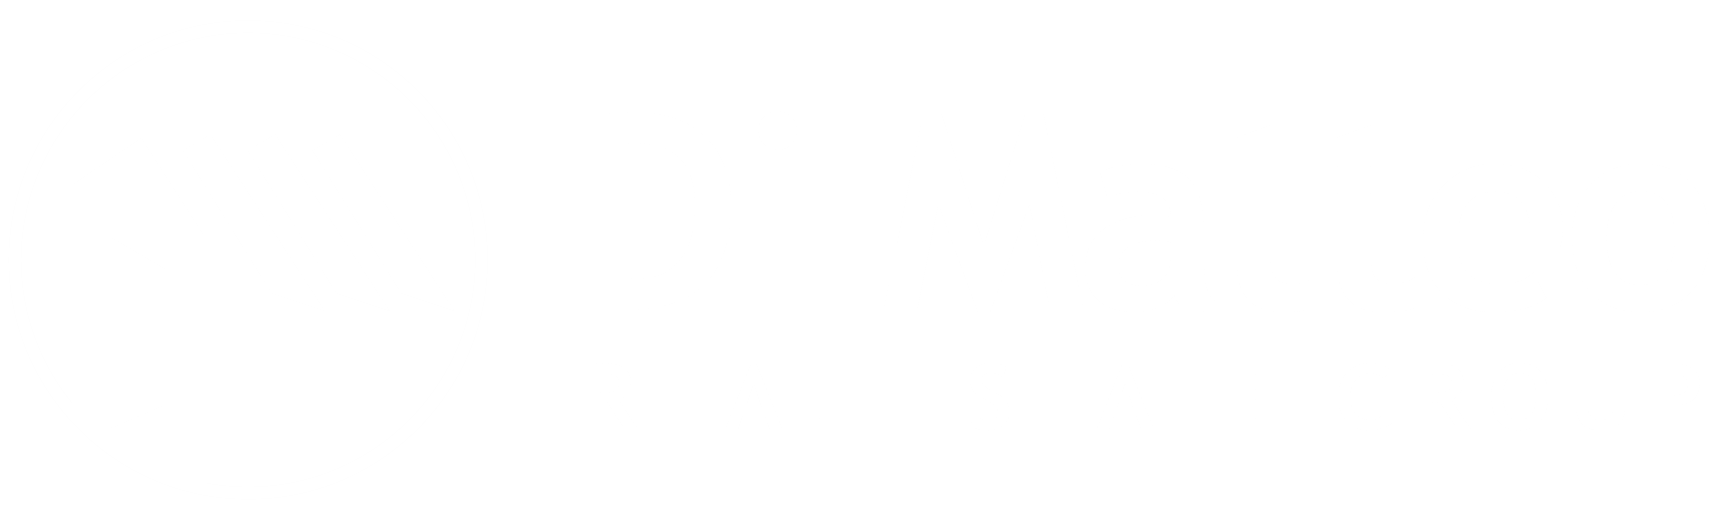 DI MATTEO GROUP